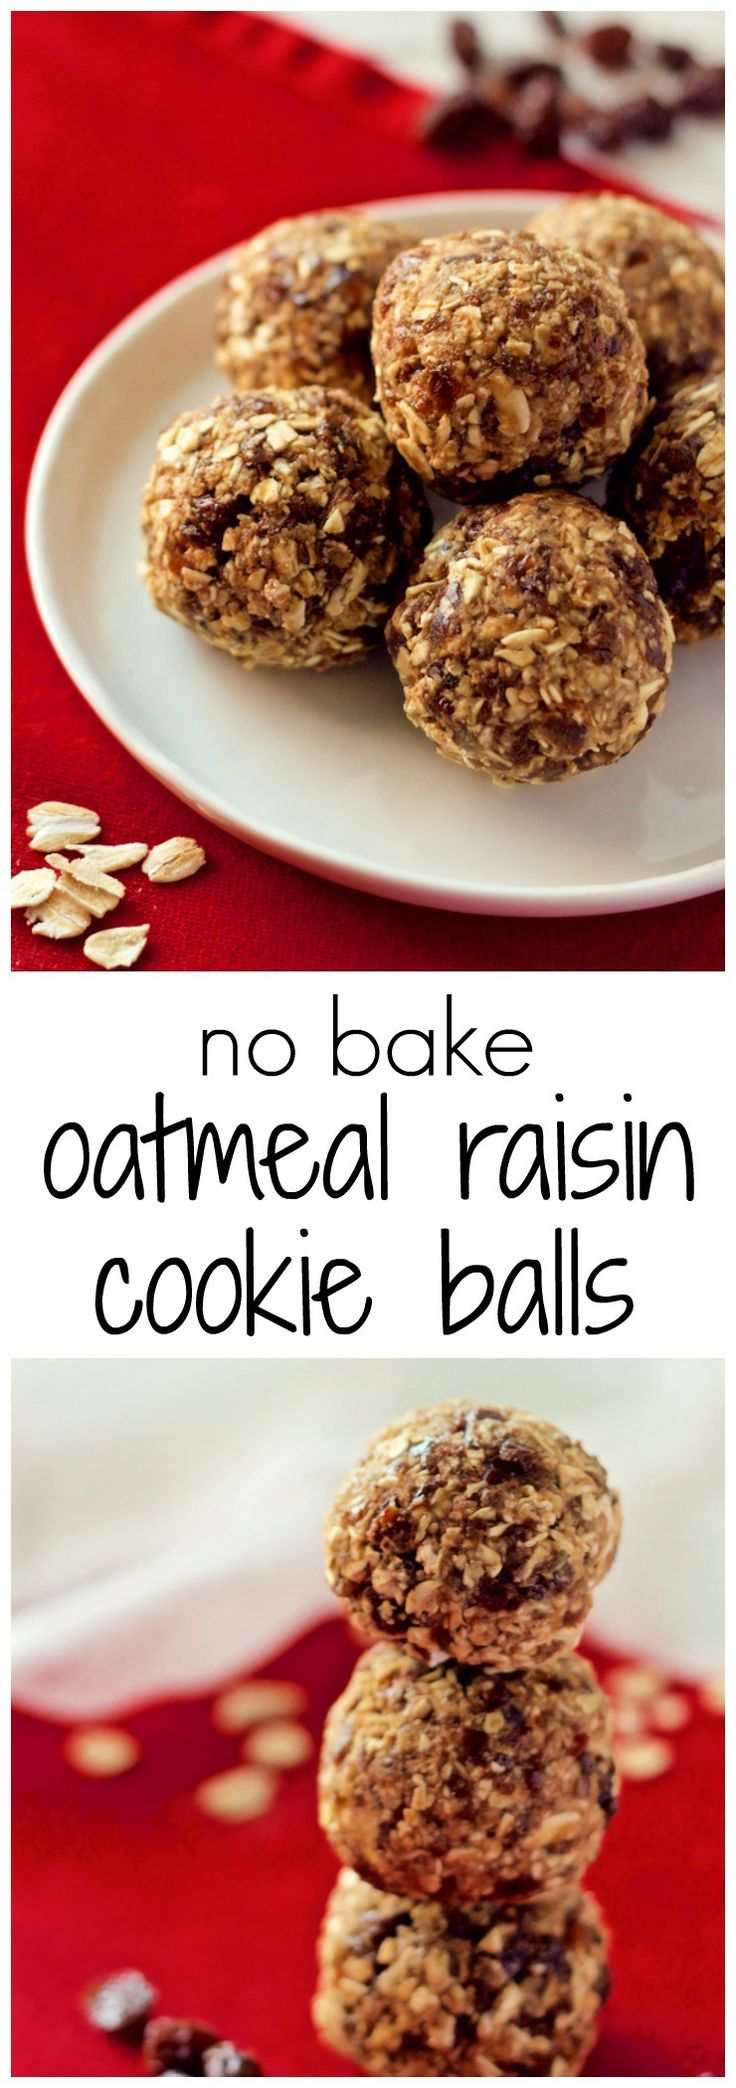 No-bake healthy oatmeal raisin cookie balls - naturally sweetened, gluten free and sure to satisfy your sweet tooth! | FamilyFoodontheTable.com